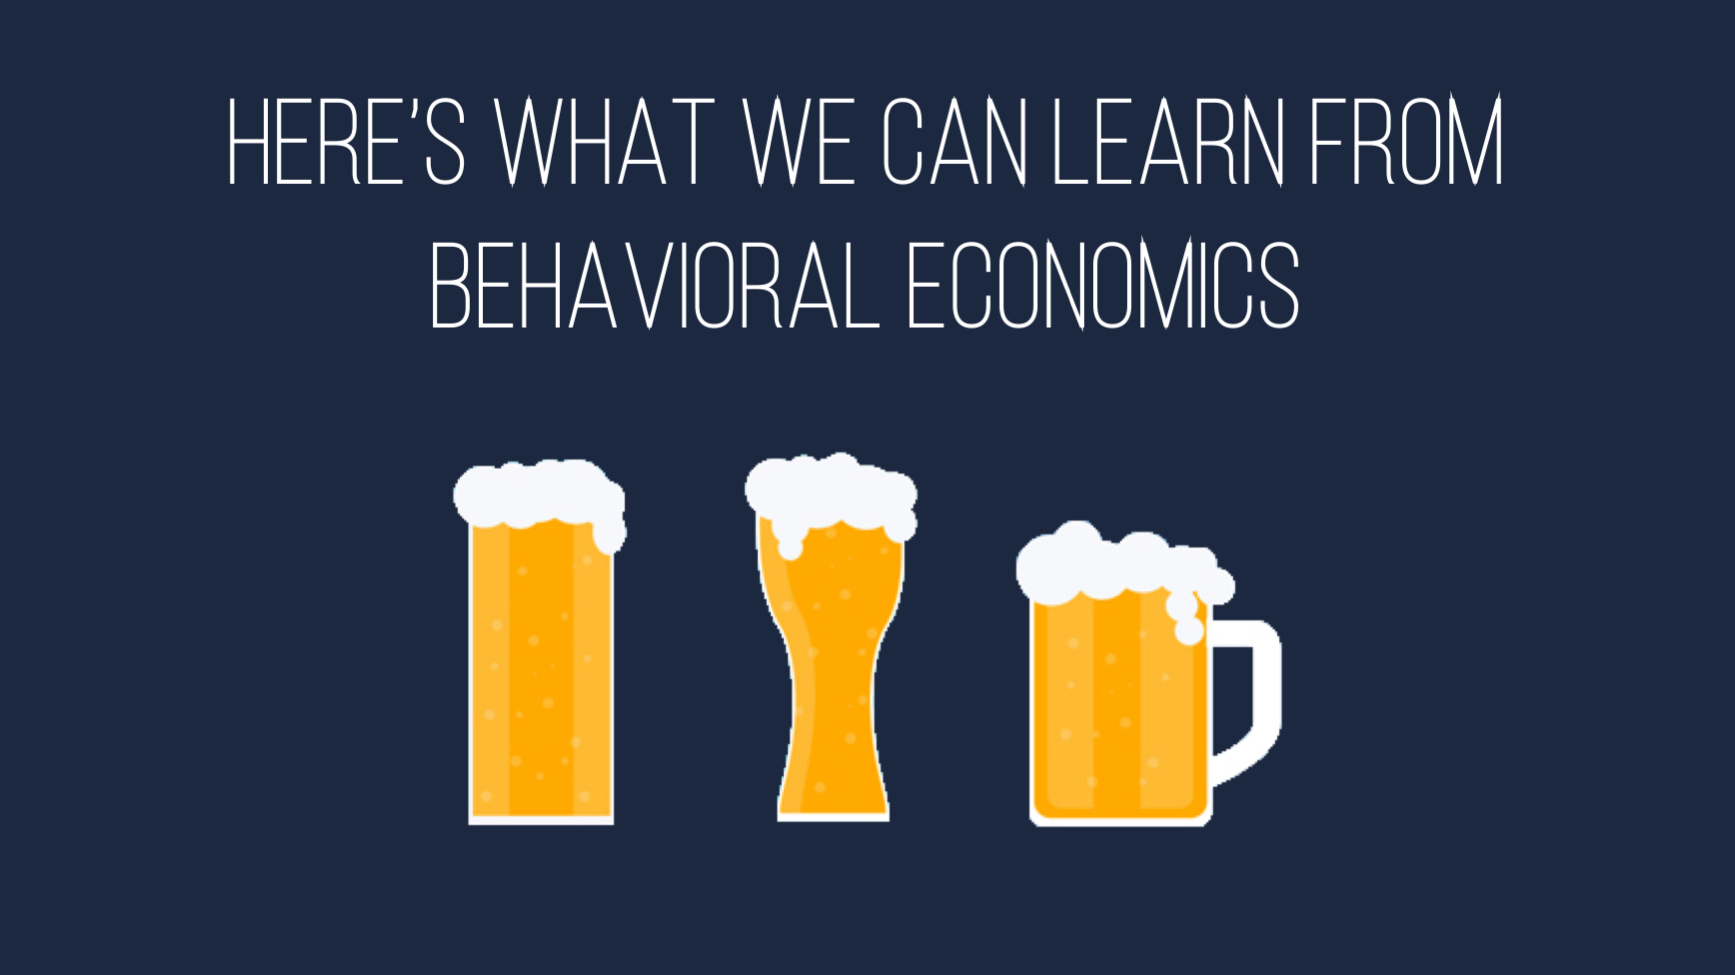 What we can learn from behavioral economics